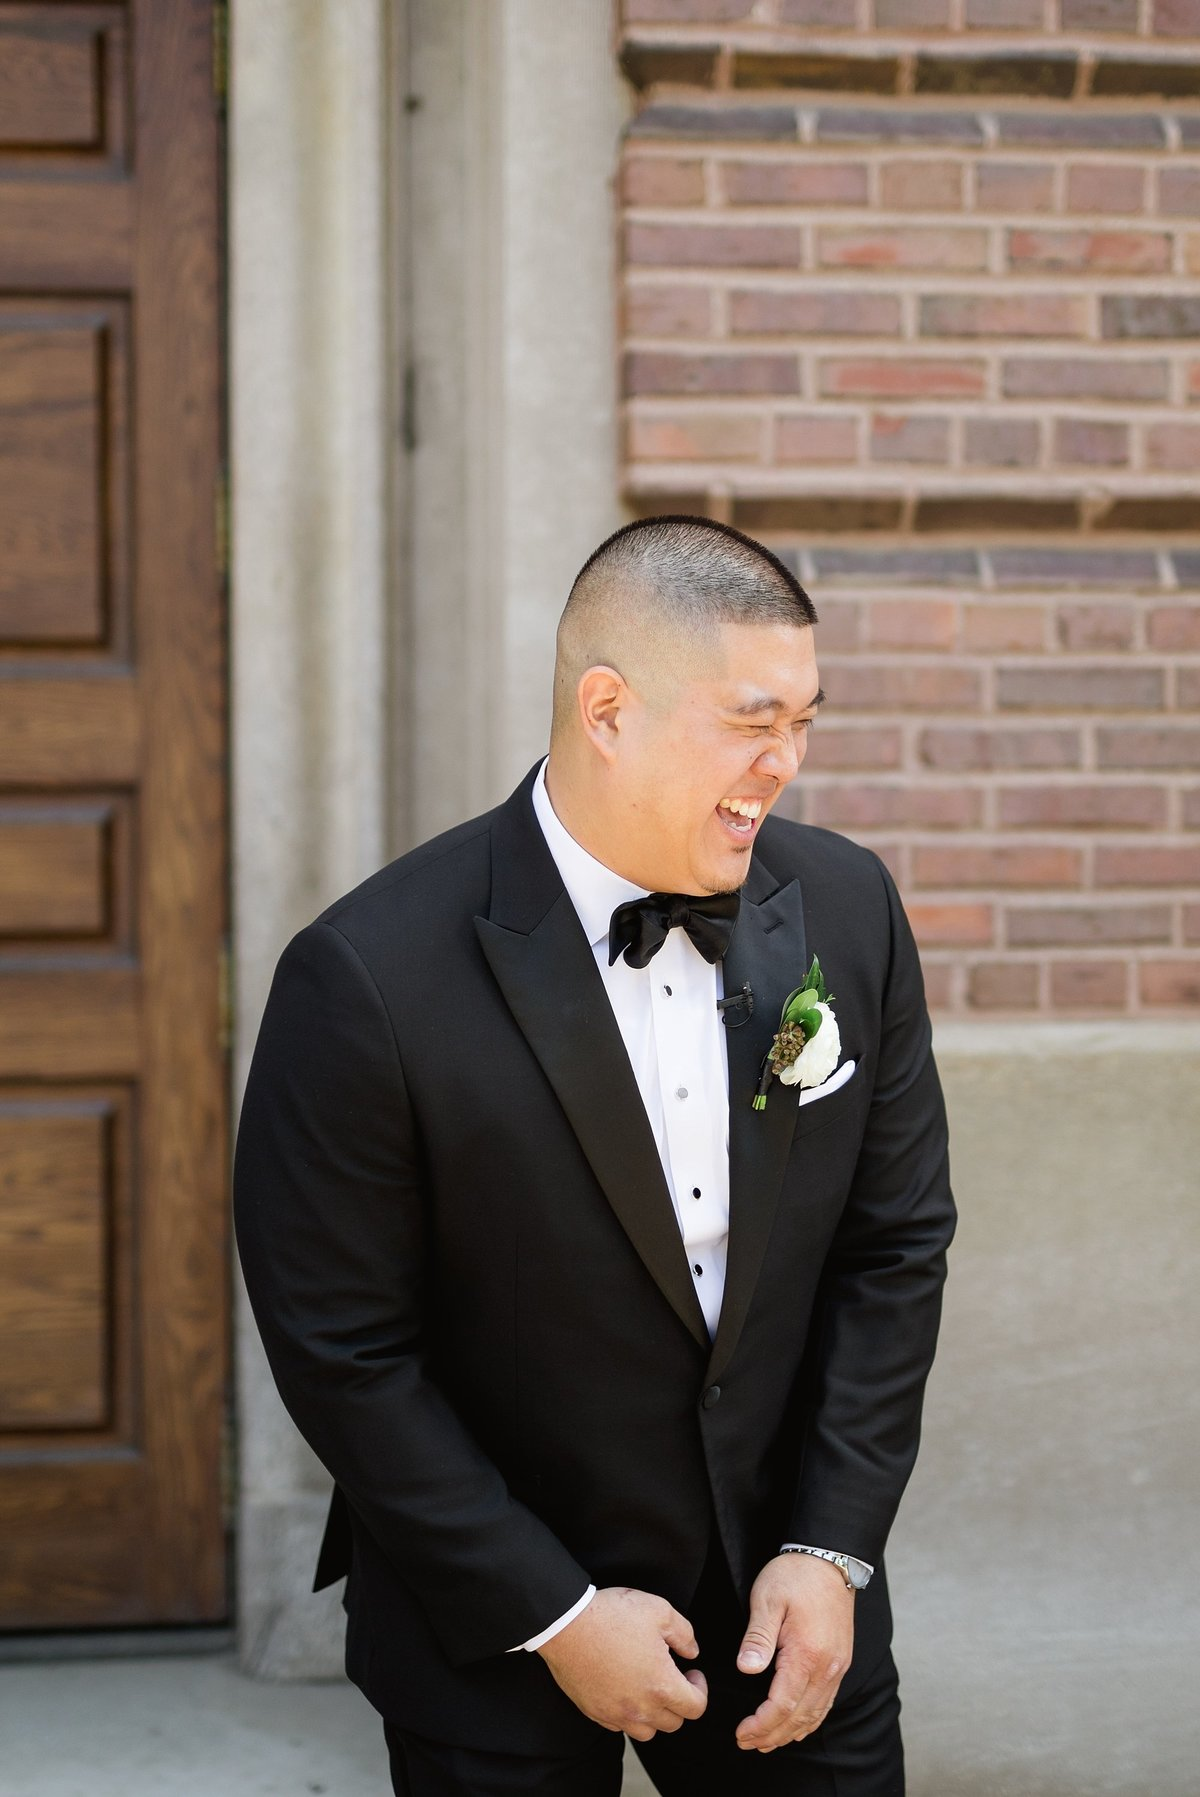 Jessica-Henry-Downtown-Chicago-Wedding-2018-Breanne-Rochelle-Photography45